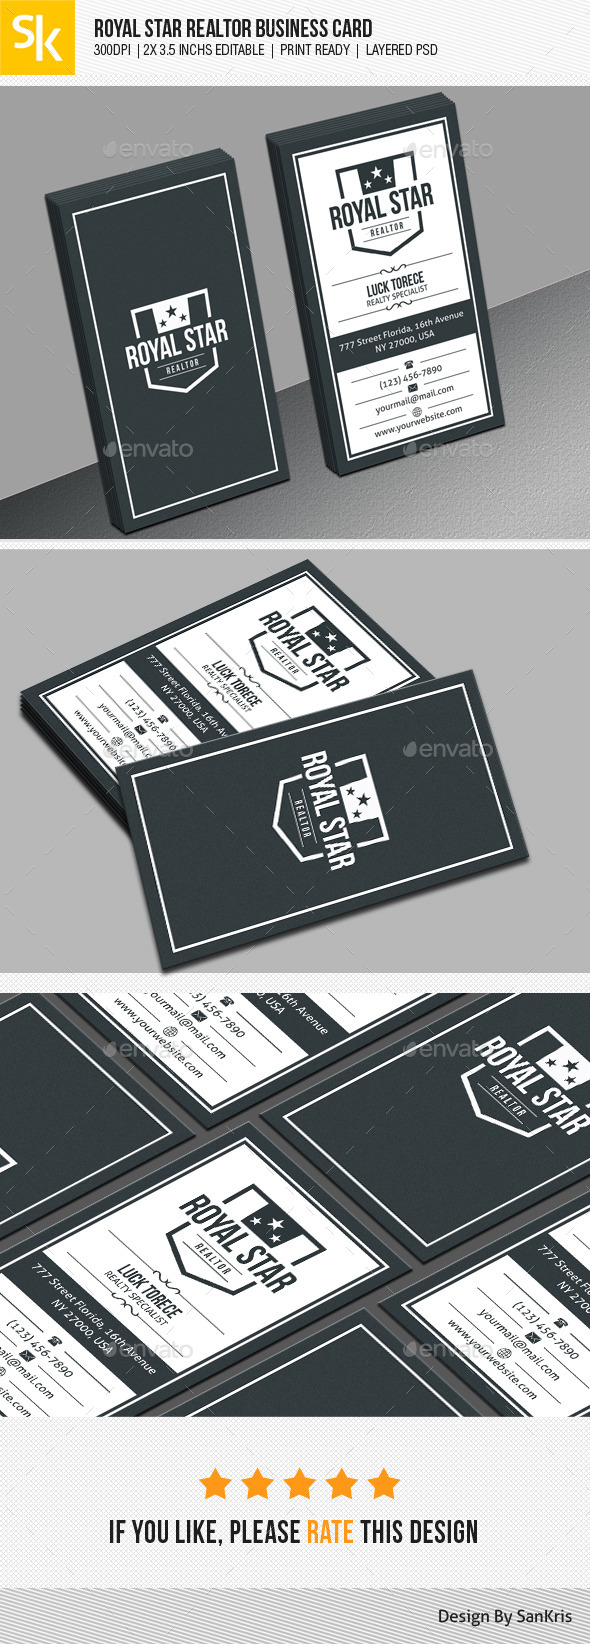 Royal Star Realtor Business Card - Corporate Business Cards